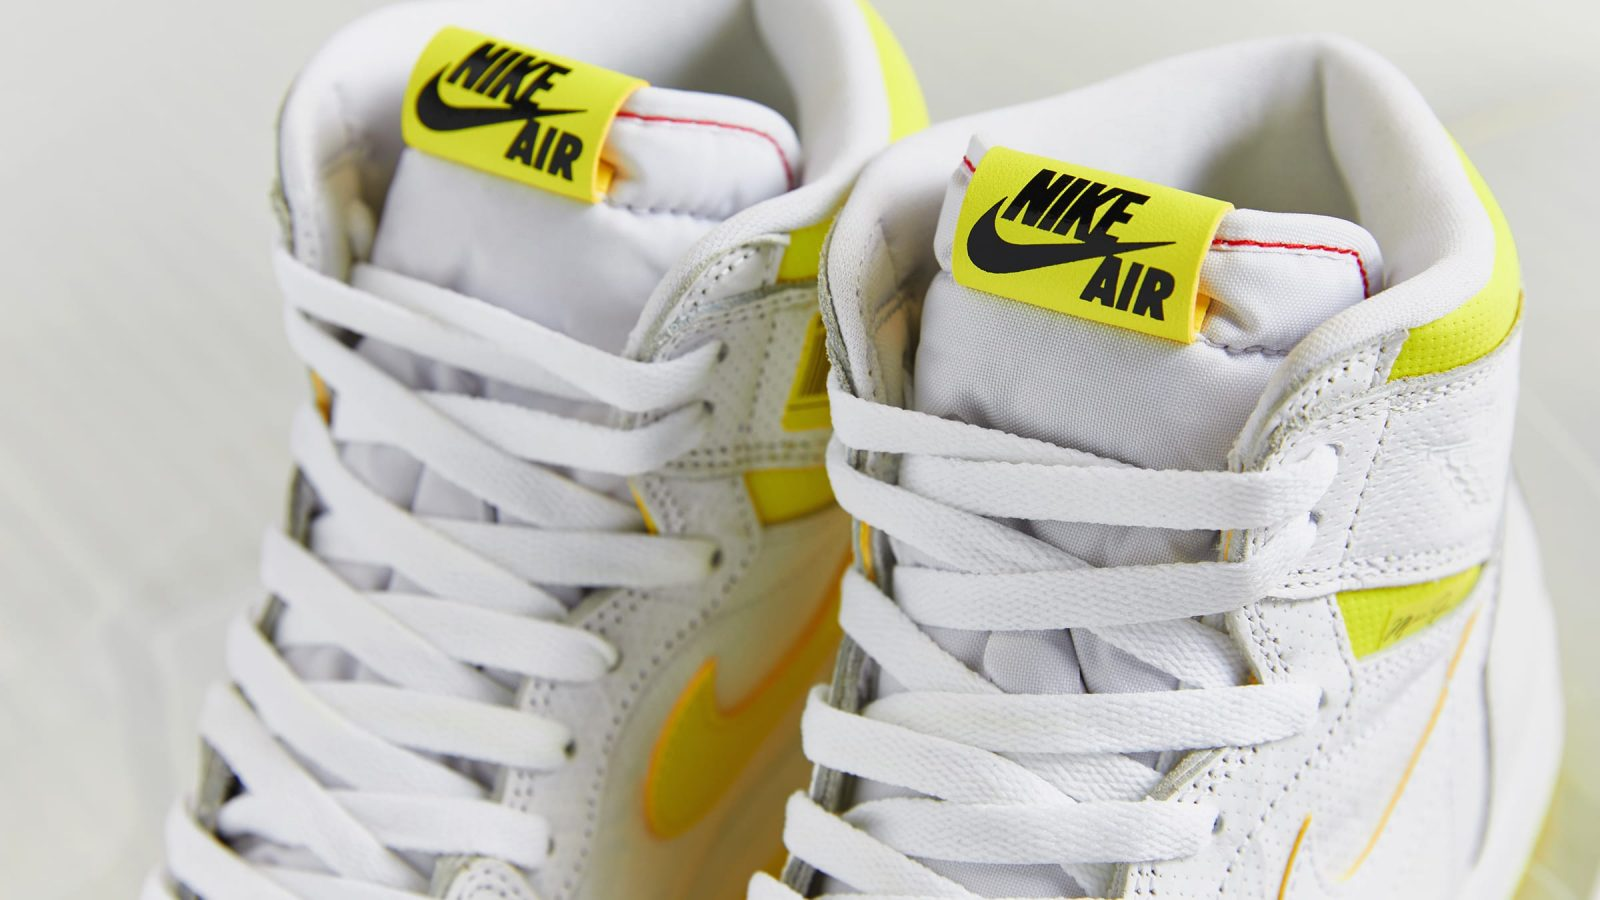 new arrival 1c3f5 0fb48 Vibrant Yellow Detailing Decorates The Air Jordan 1 'First ...